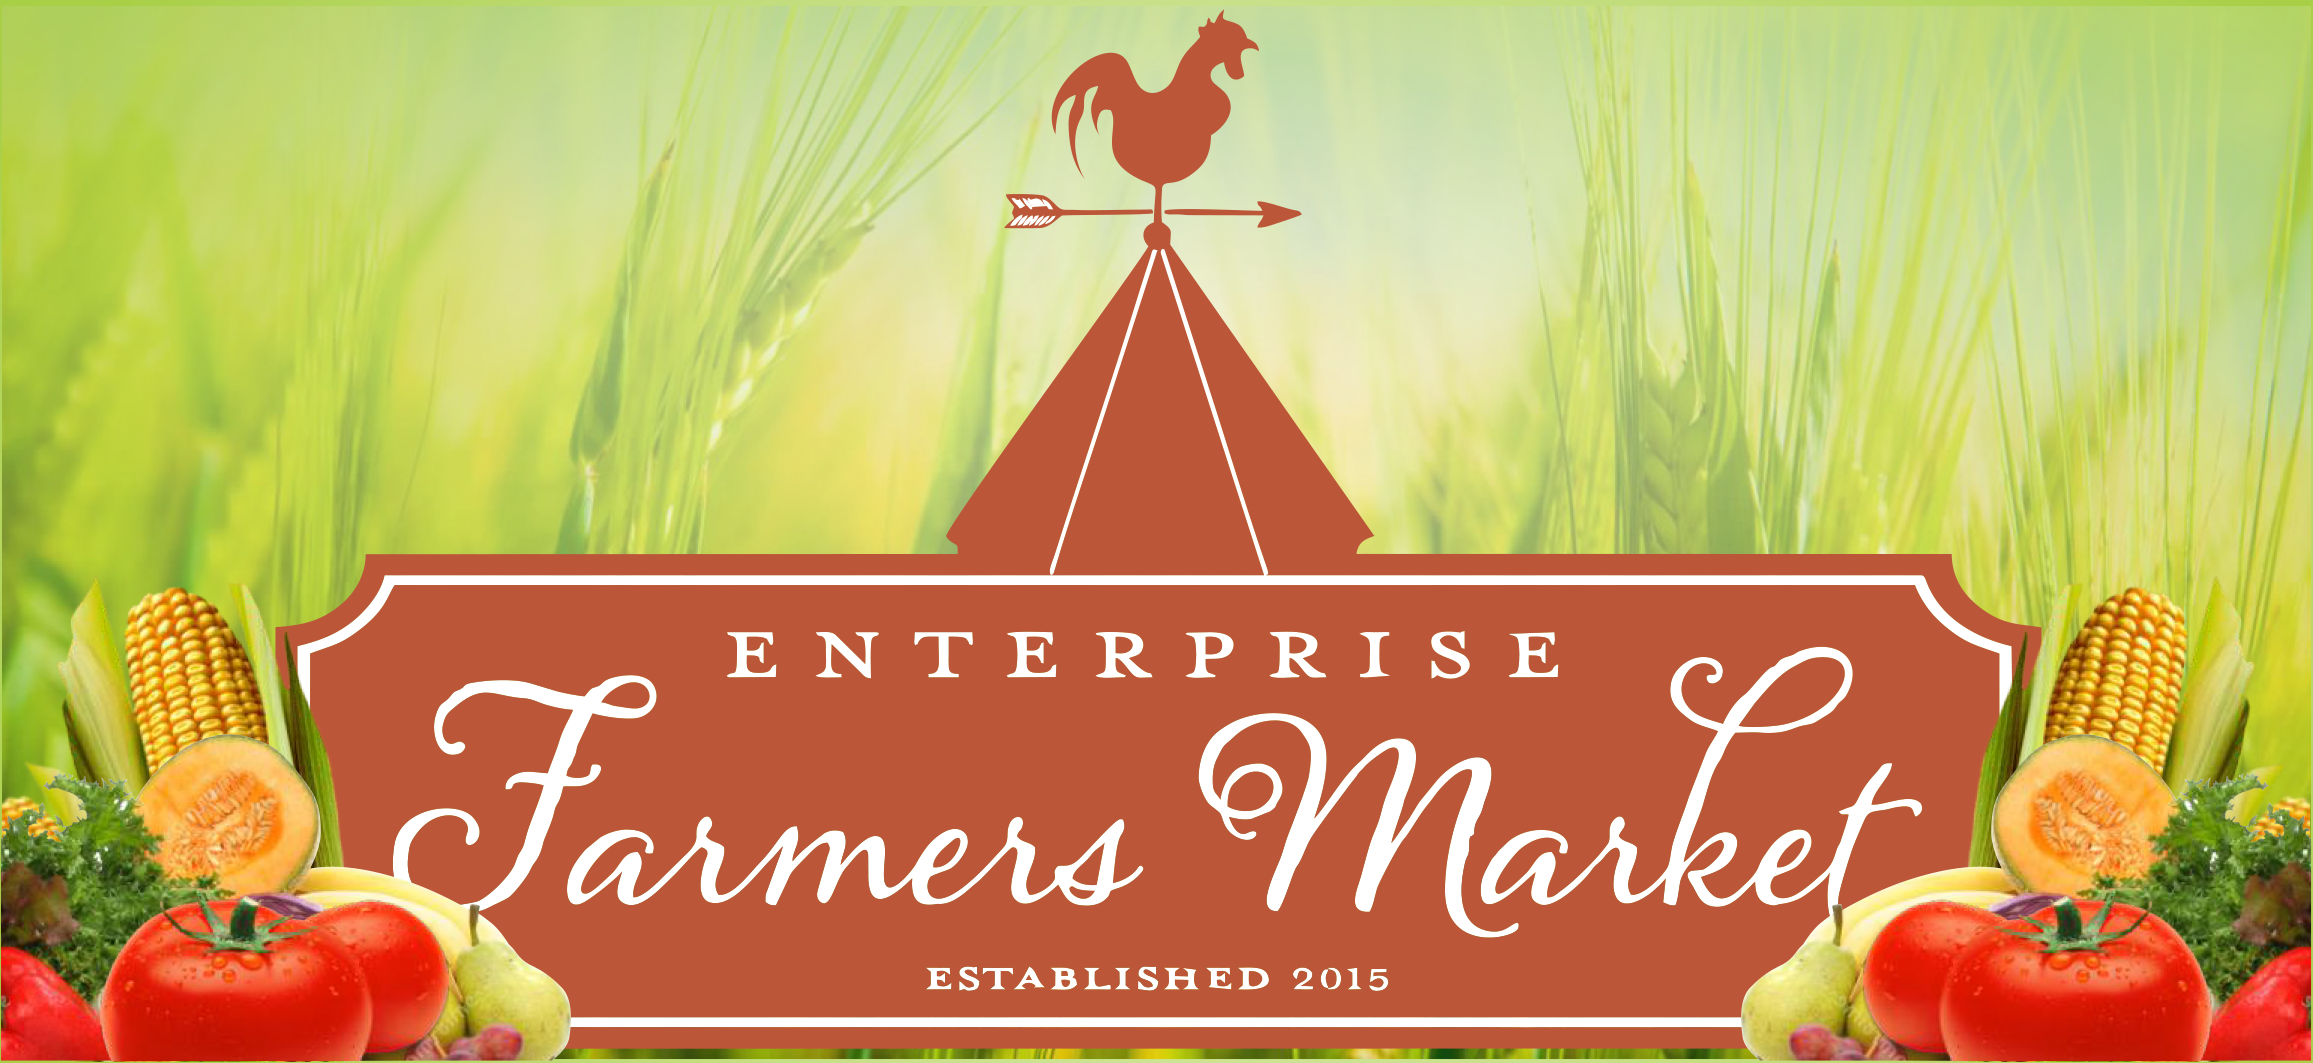 Eprise Farmers Mkt Logo With Background and vegies